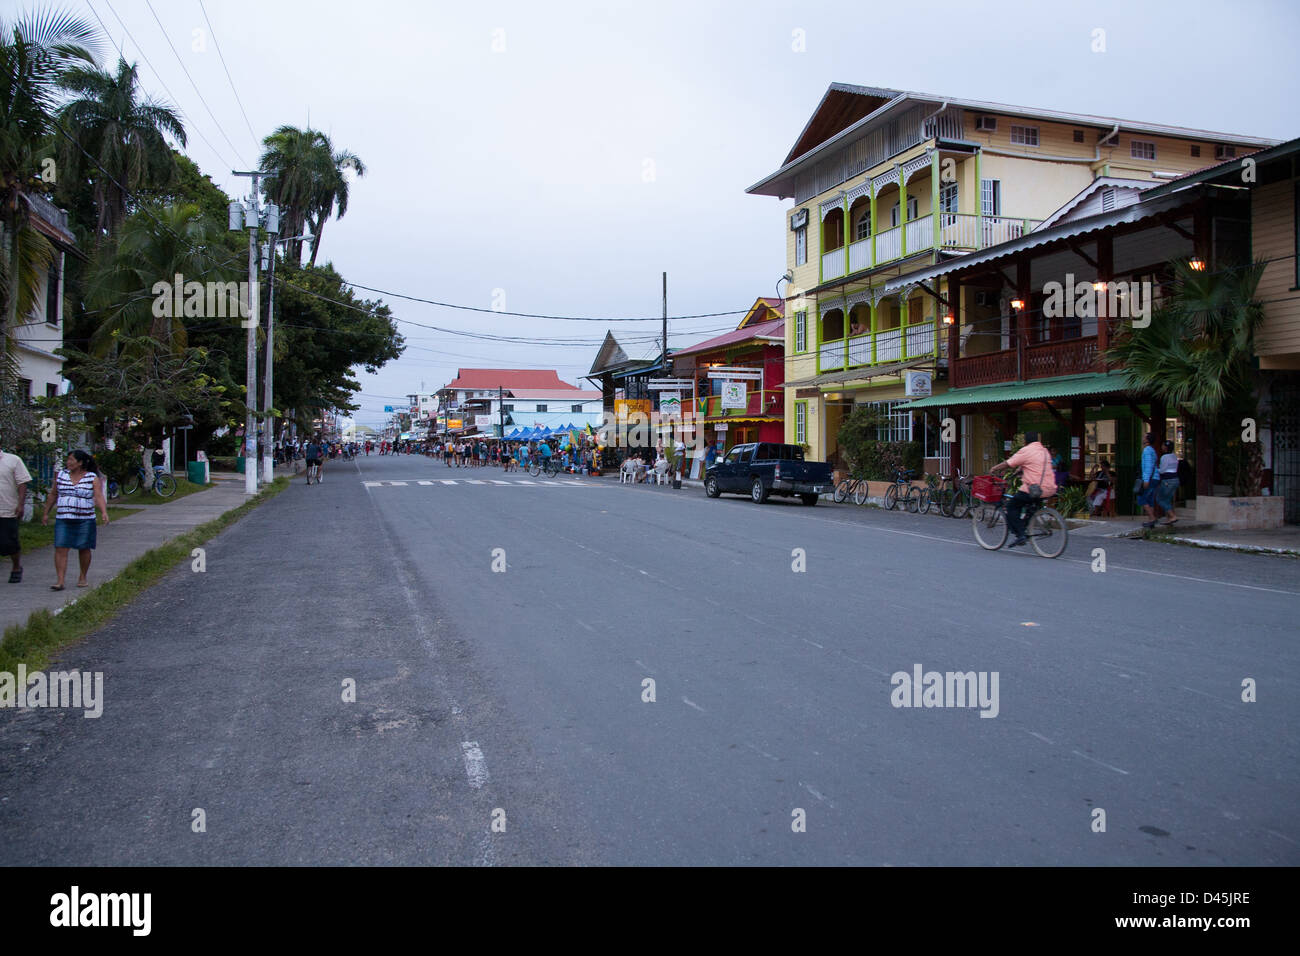 Main Street view of Bocas del Toro Town. - Stock Image